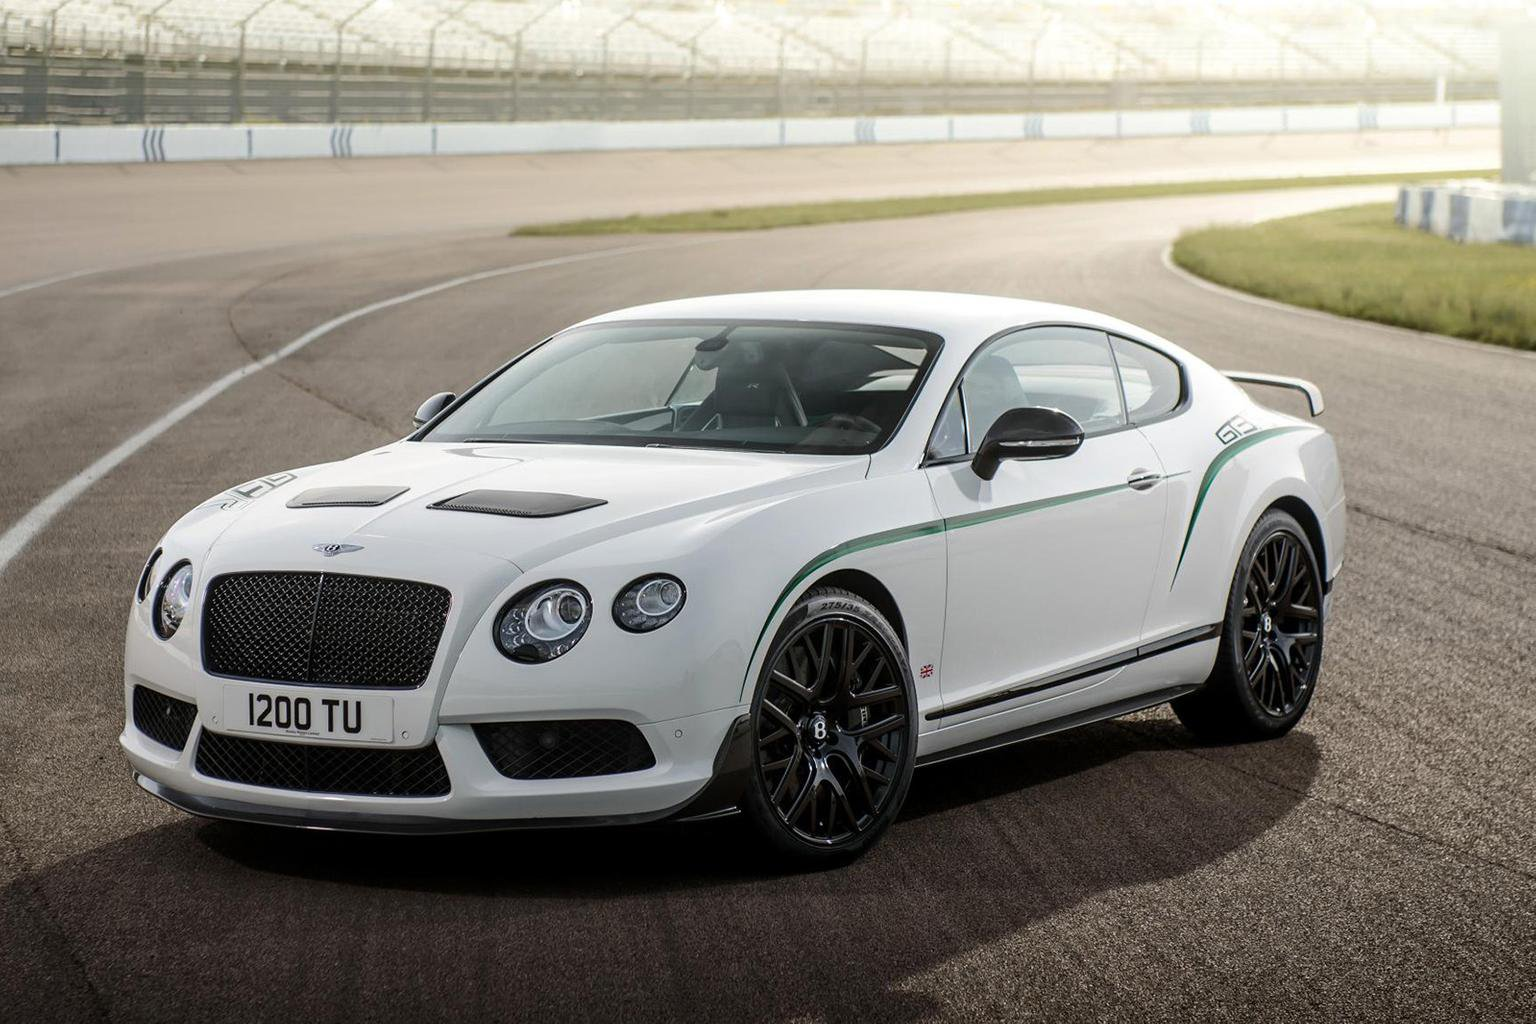 News round-up: more racing-influenced Bentleys, and Jaguar Project 7 on track to sell out